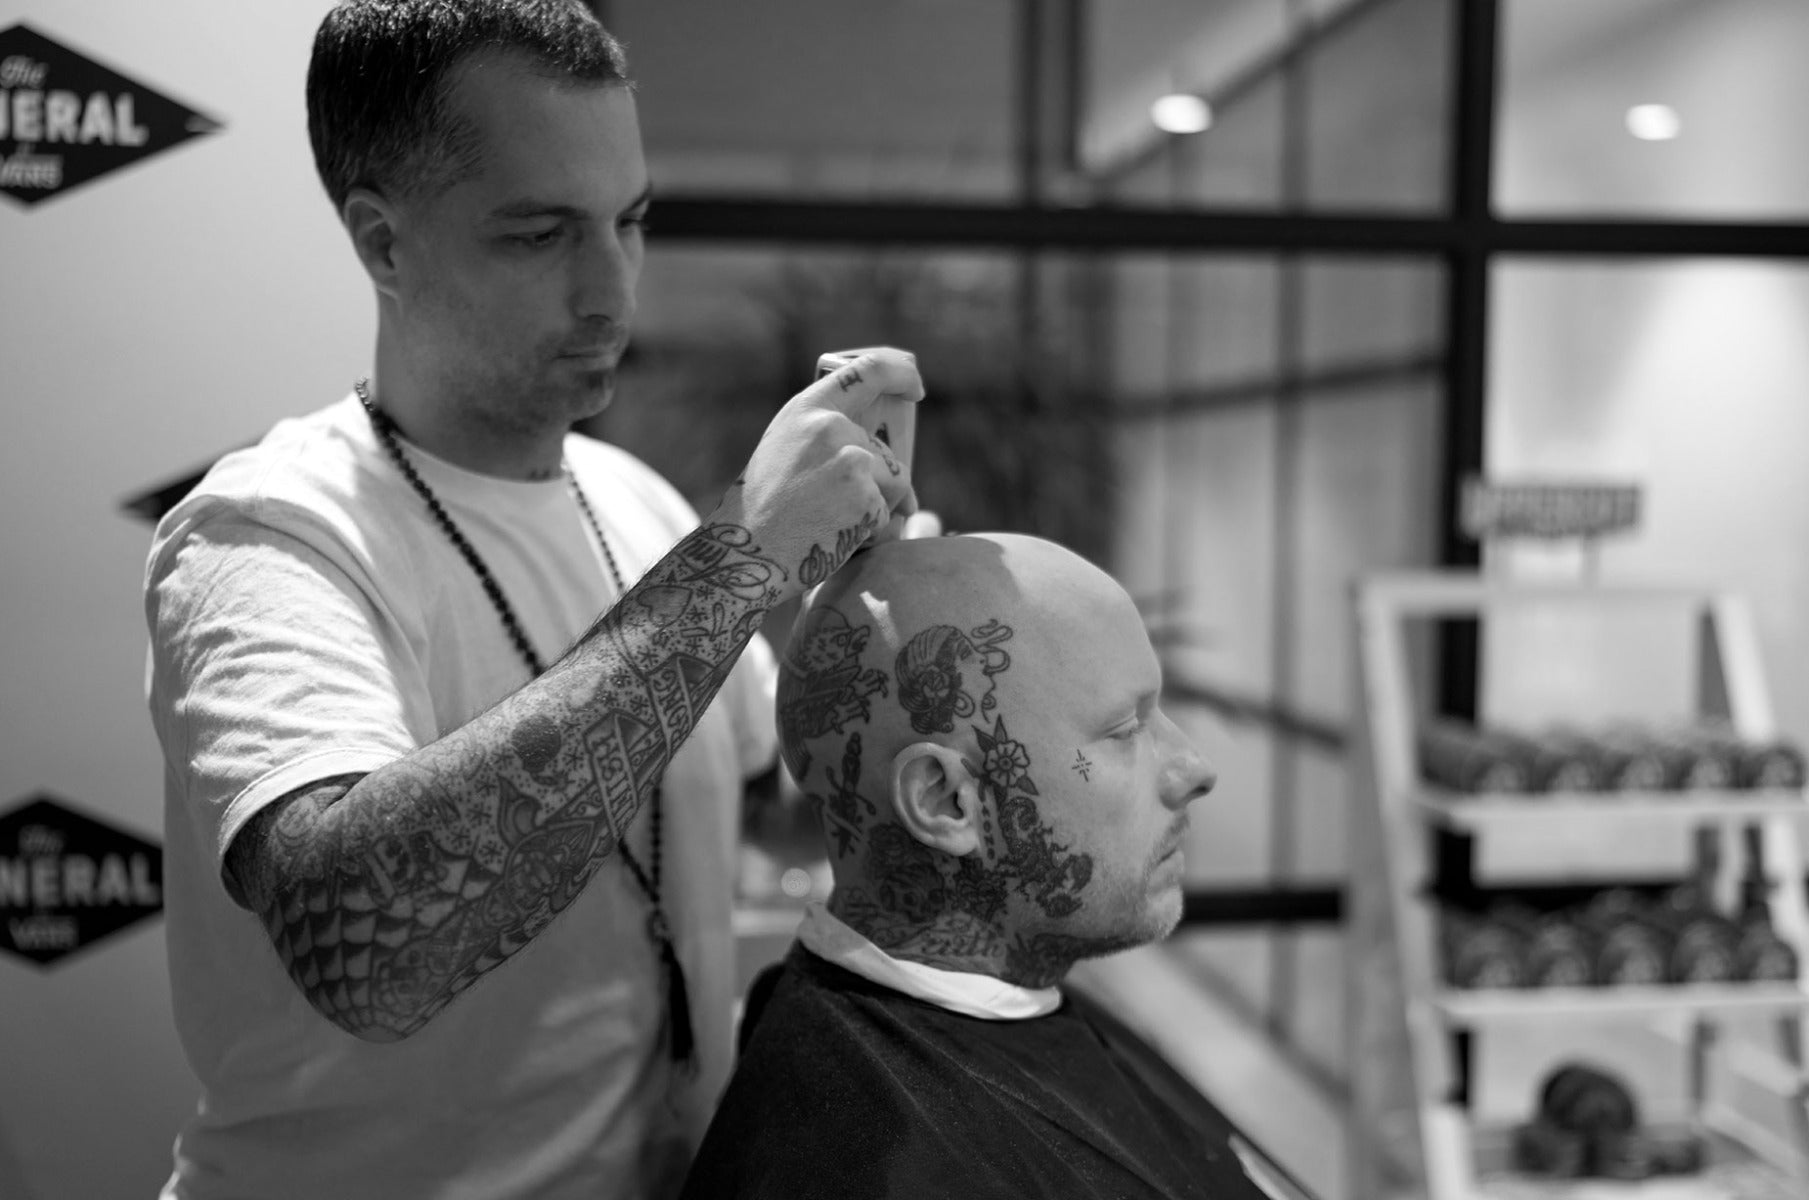 Man having head shaved by barber